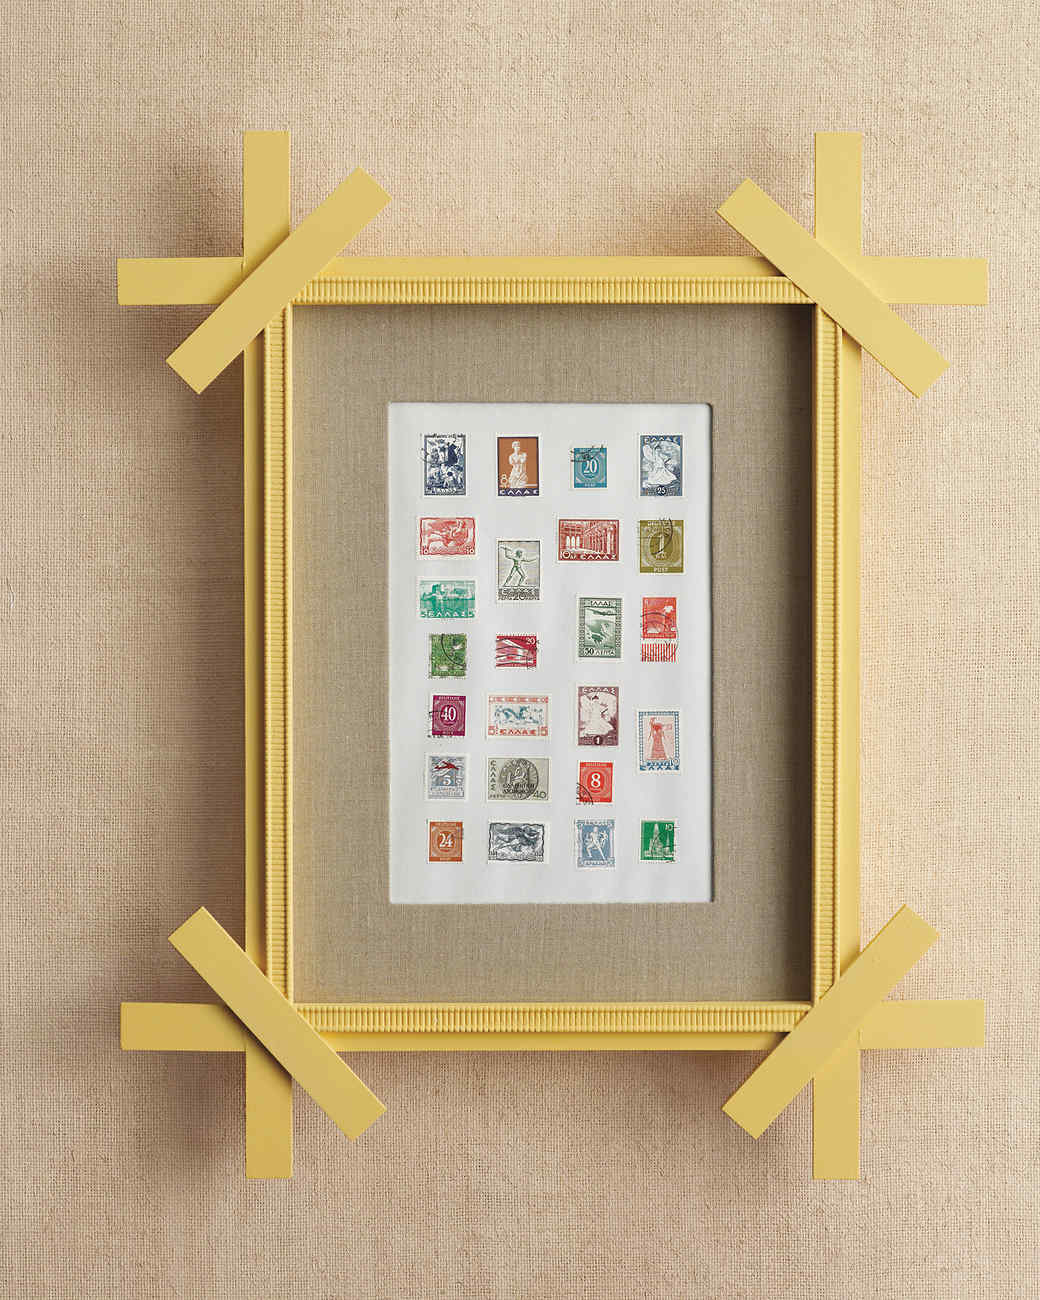 Dollhouse-Trim Frame How-To